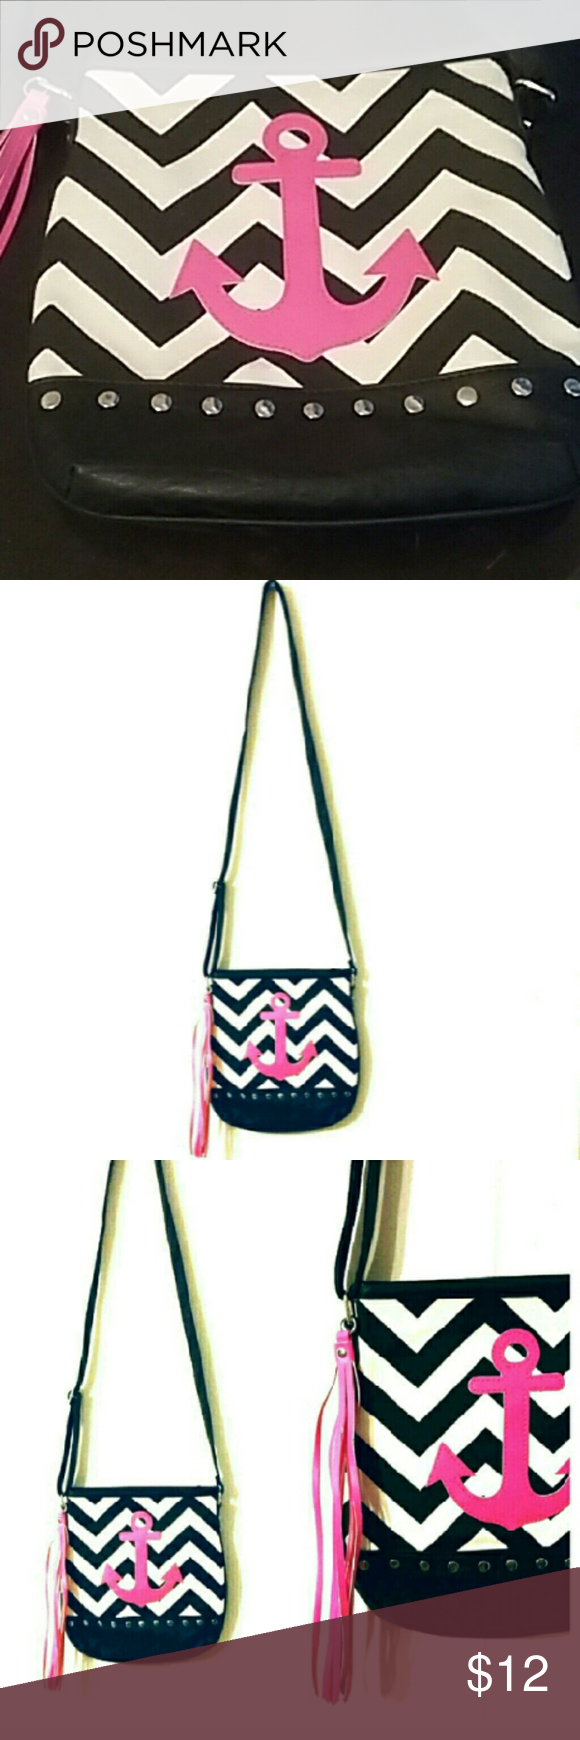 """chevron anchor crossbody bag Super cute black and white chevron crossbody bag with a hot pink anchor and fringe tassel. I ordered this off Posh NWT and only used for 1 day. I'm so sad that everything I need daily doesn't fit in this bag. So I have to reposh :( 10"""" X 9.5"""" Bags Crossbody Bags"""